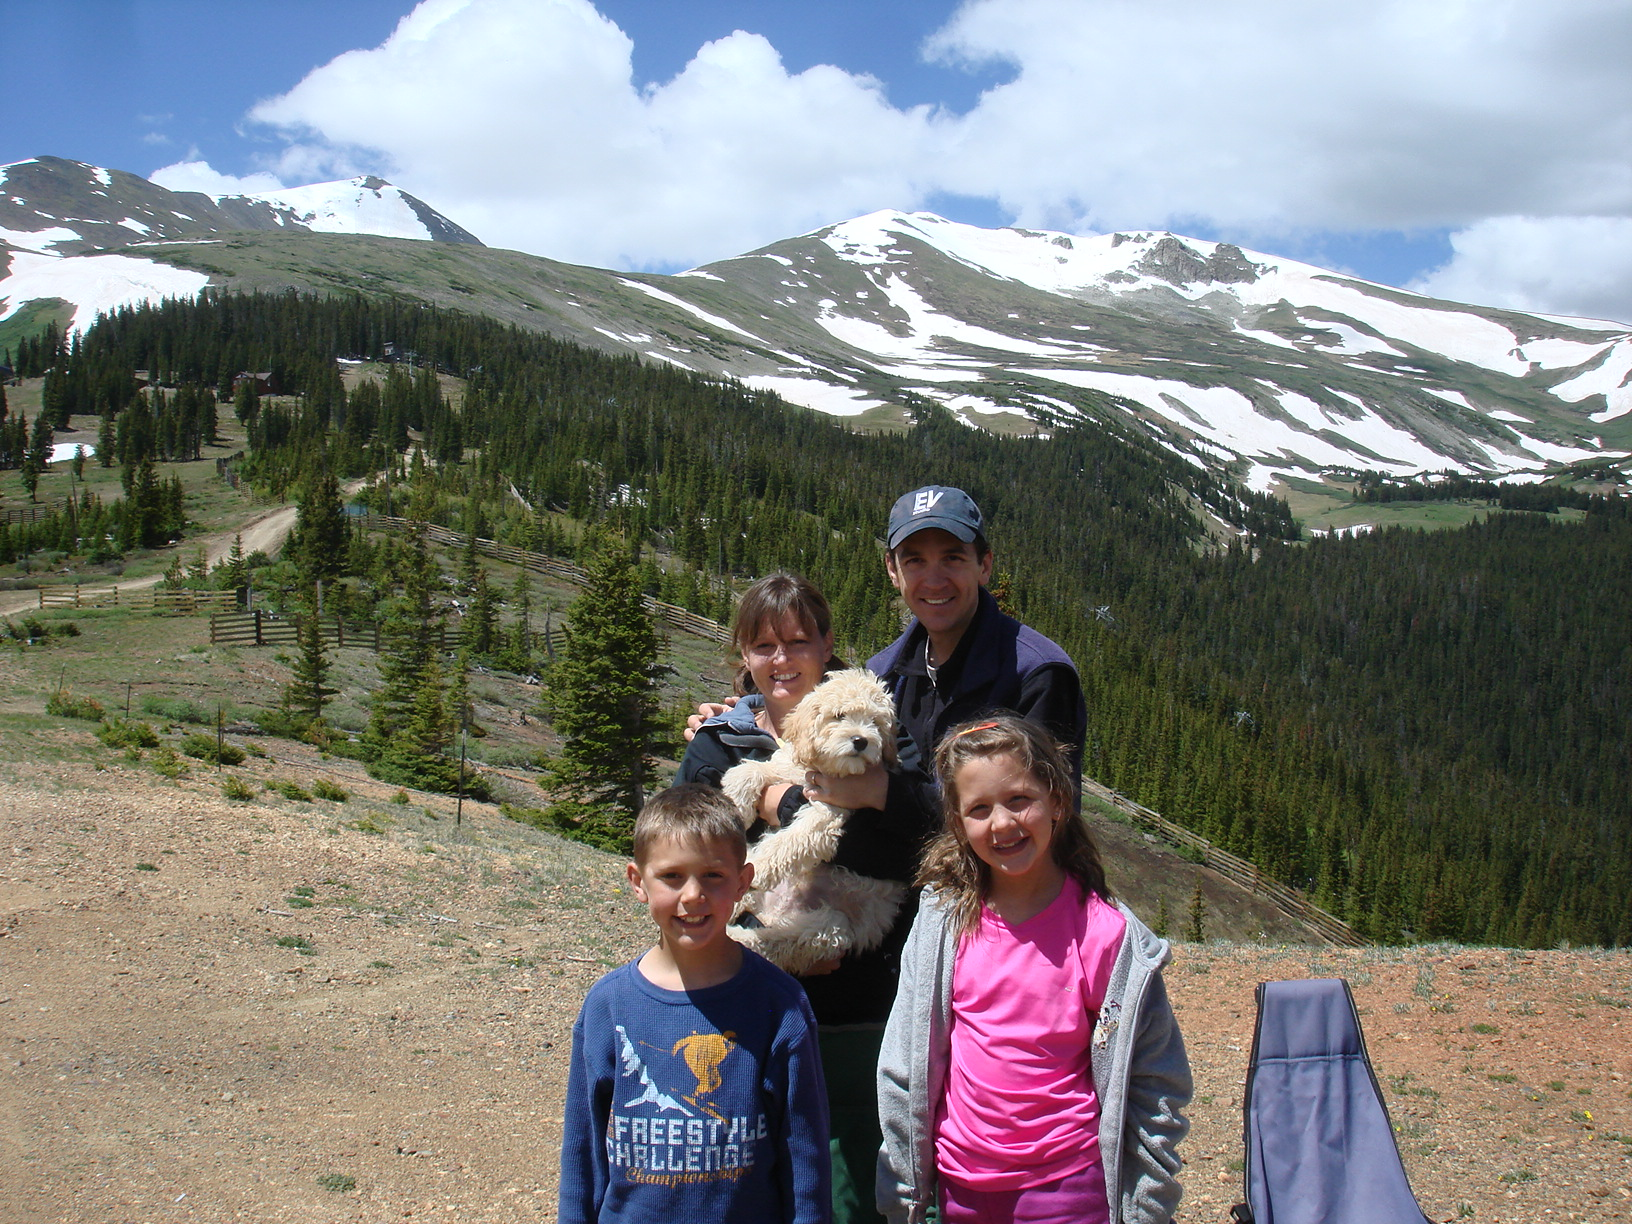 Dean and family on Peak 9, Breckenridge